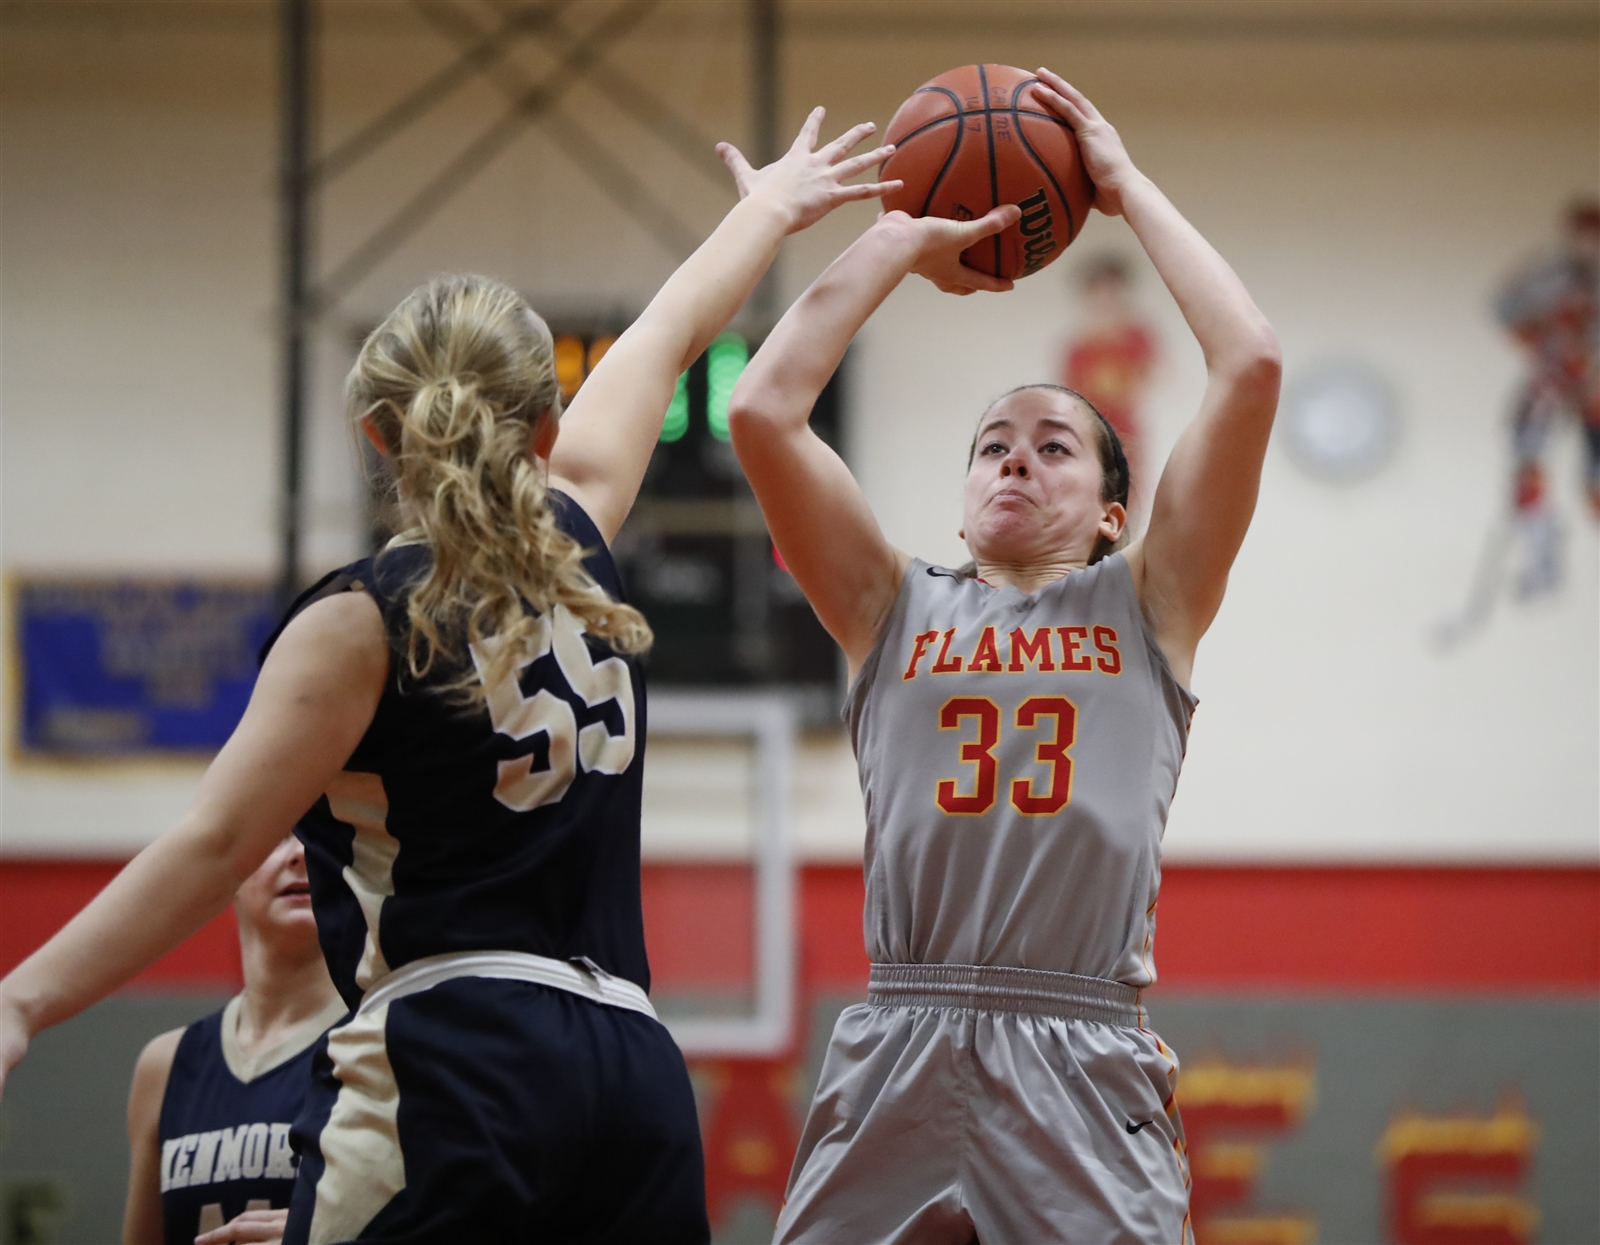 Williamsville Eastu2019s Rachel Romanowski shoots against Kenmore East. She led the Flames with 12 points.